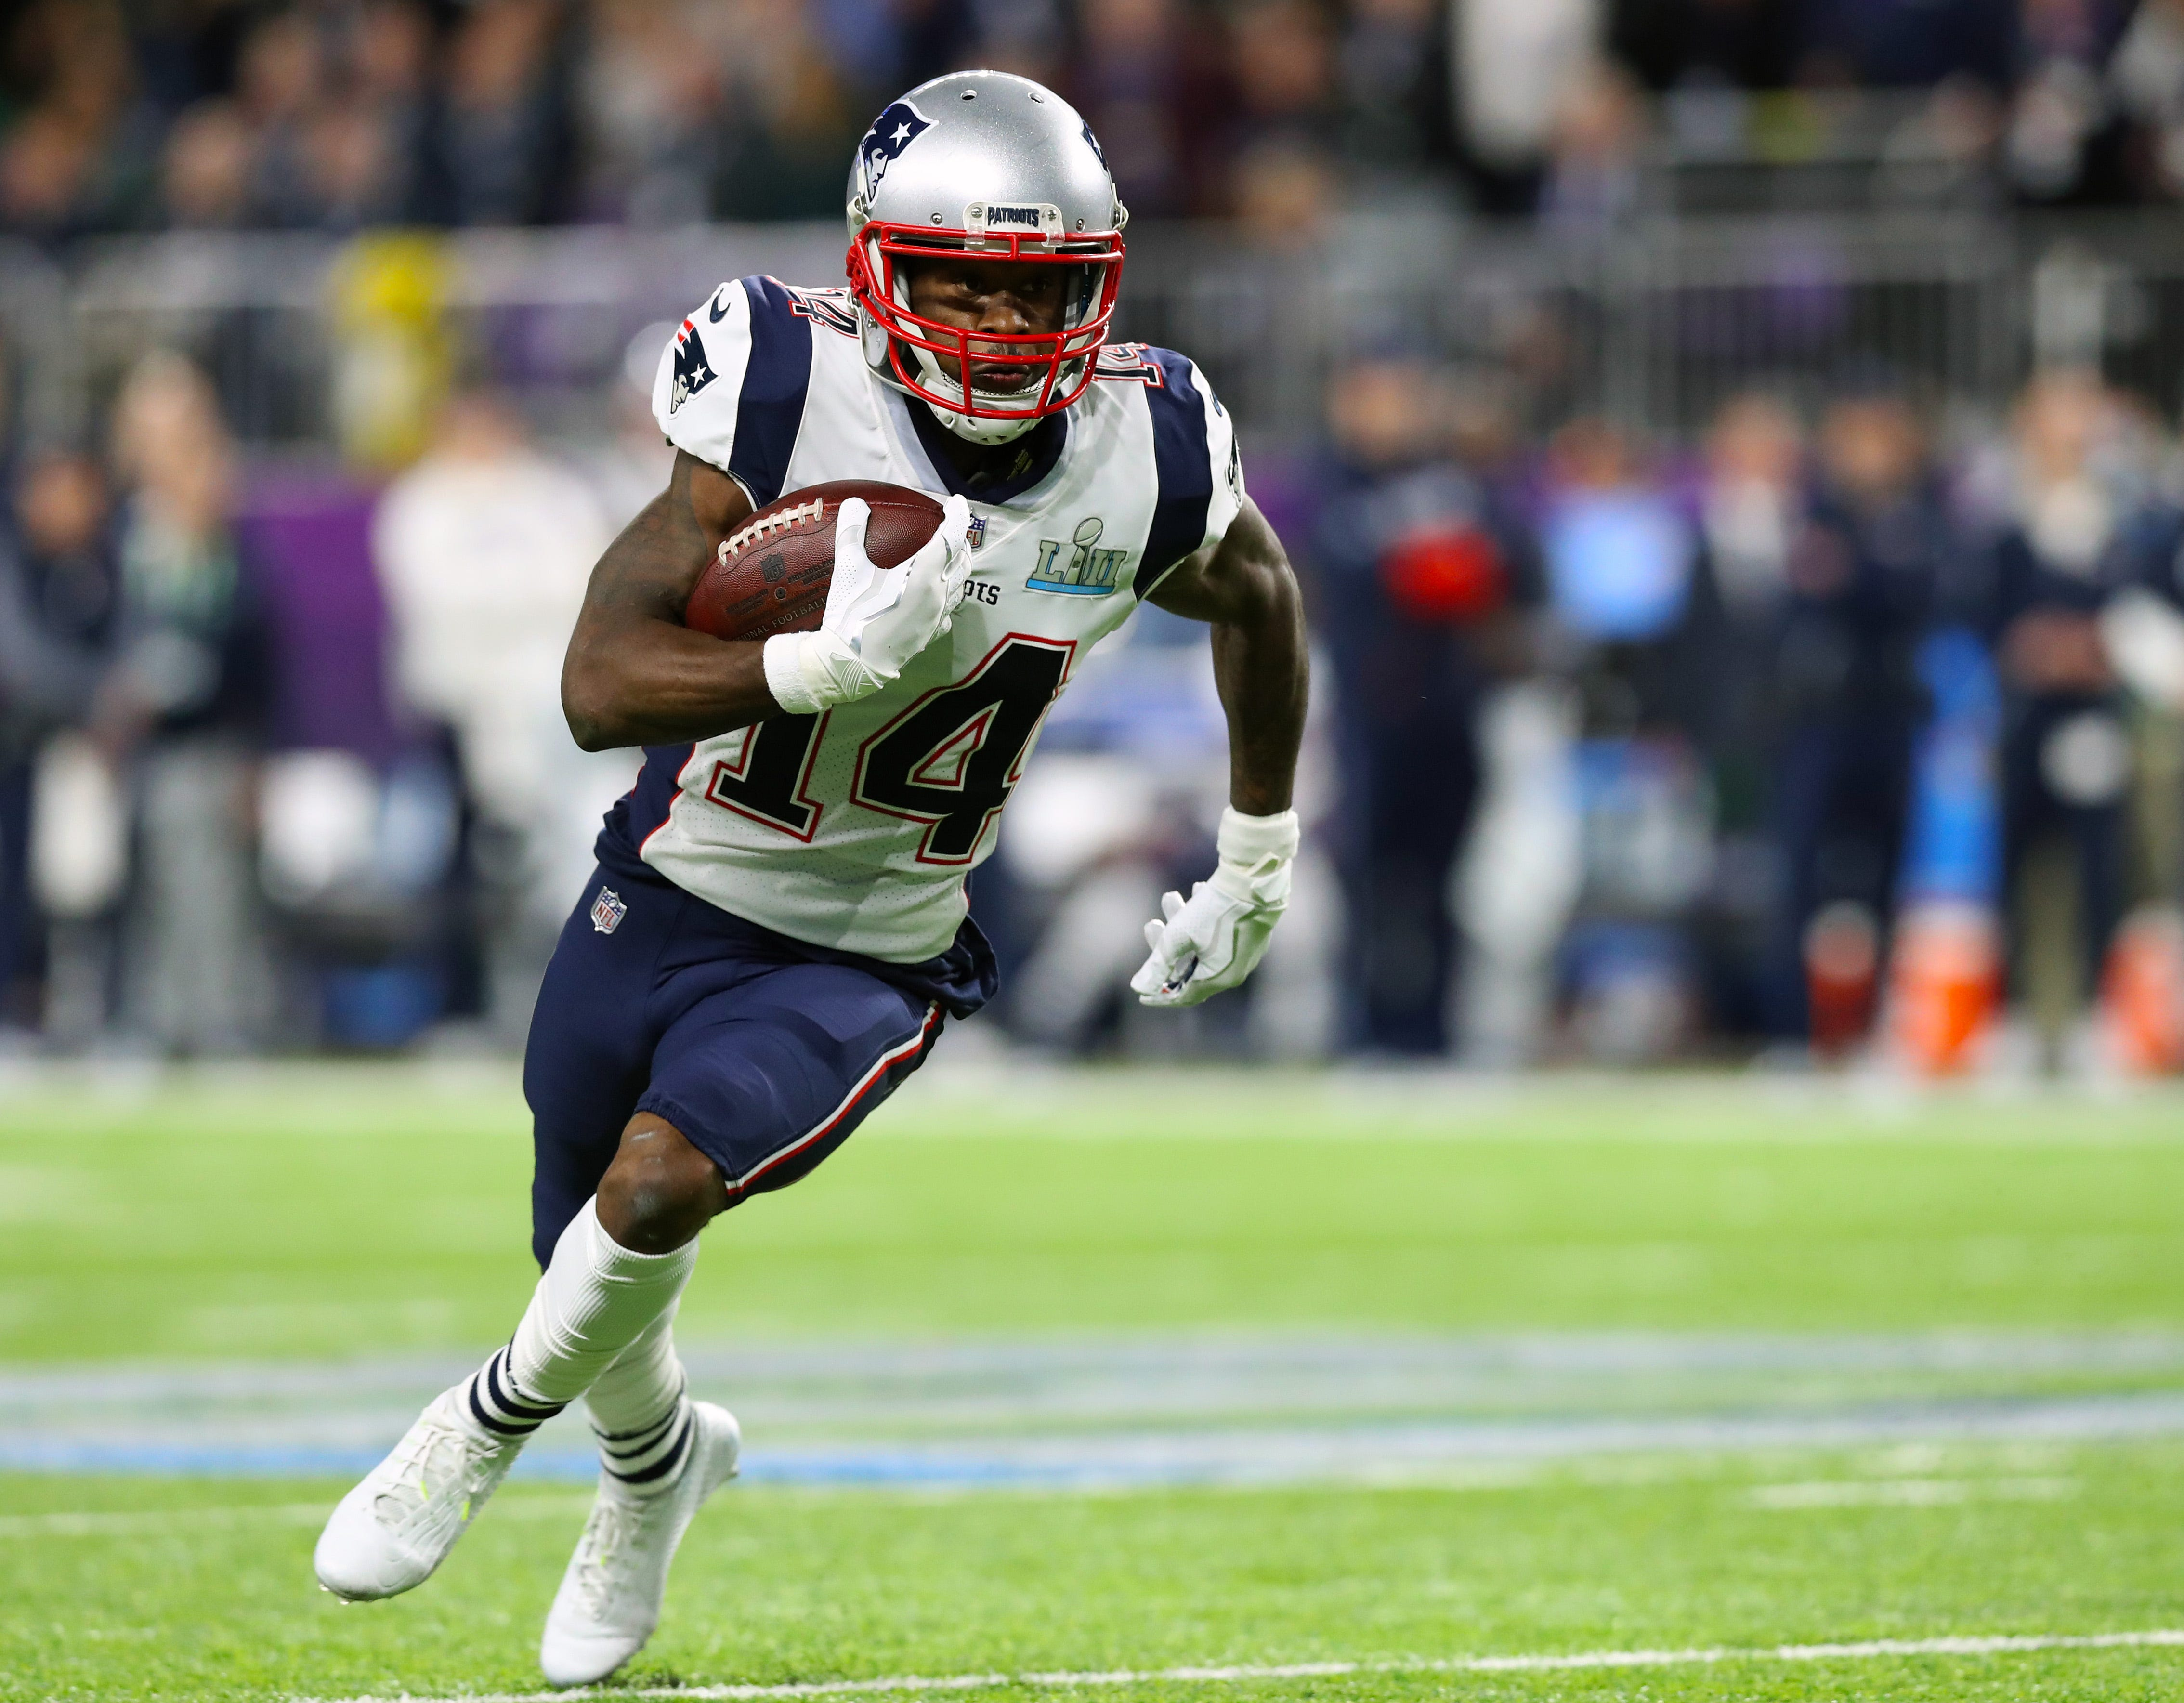 Rams land WR Brandin Cooks in trade with Patriots, ending pursuit of Odell Beckham Jr.